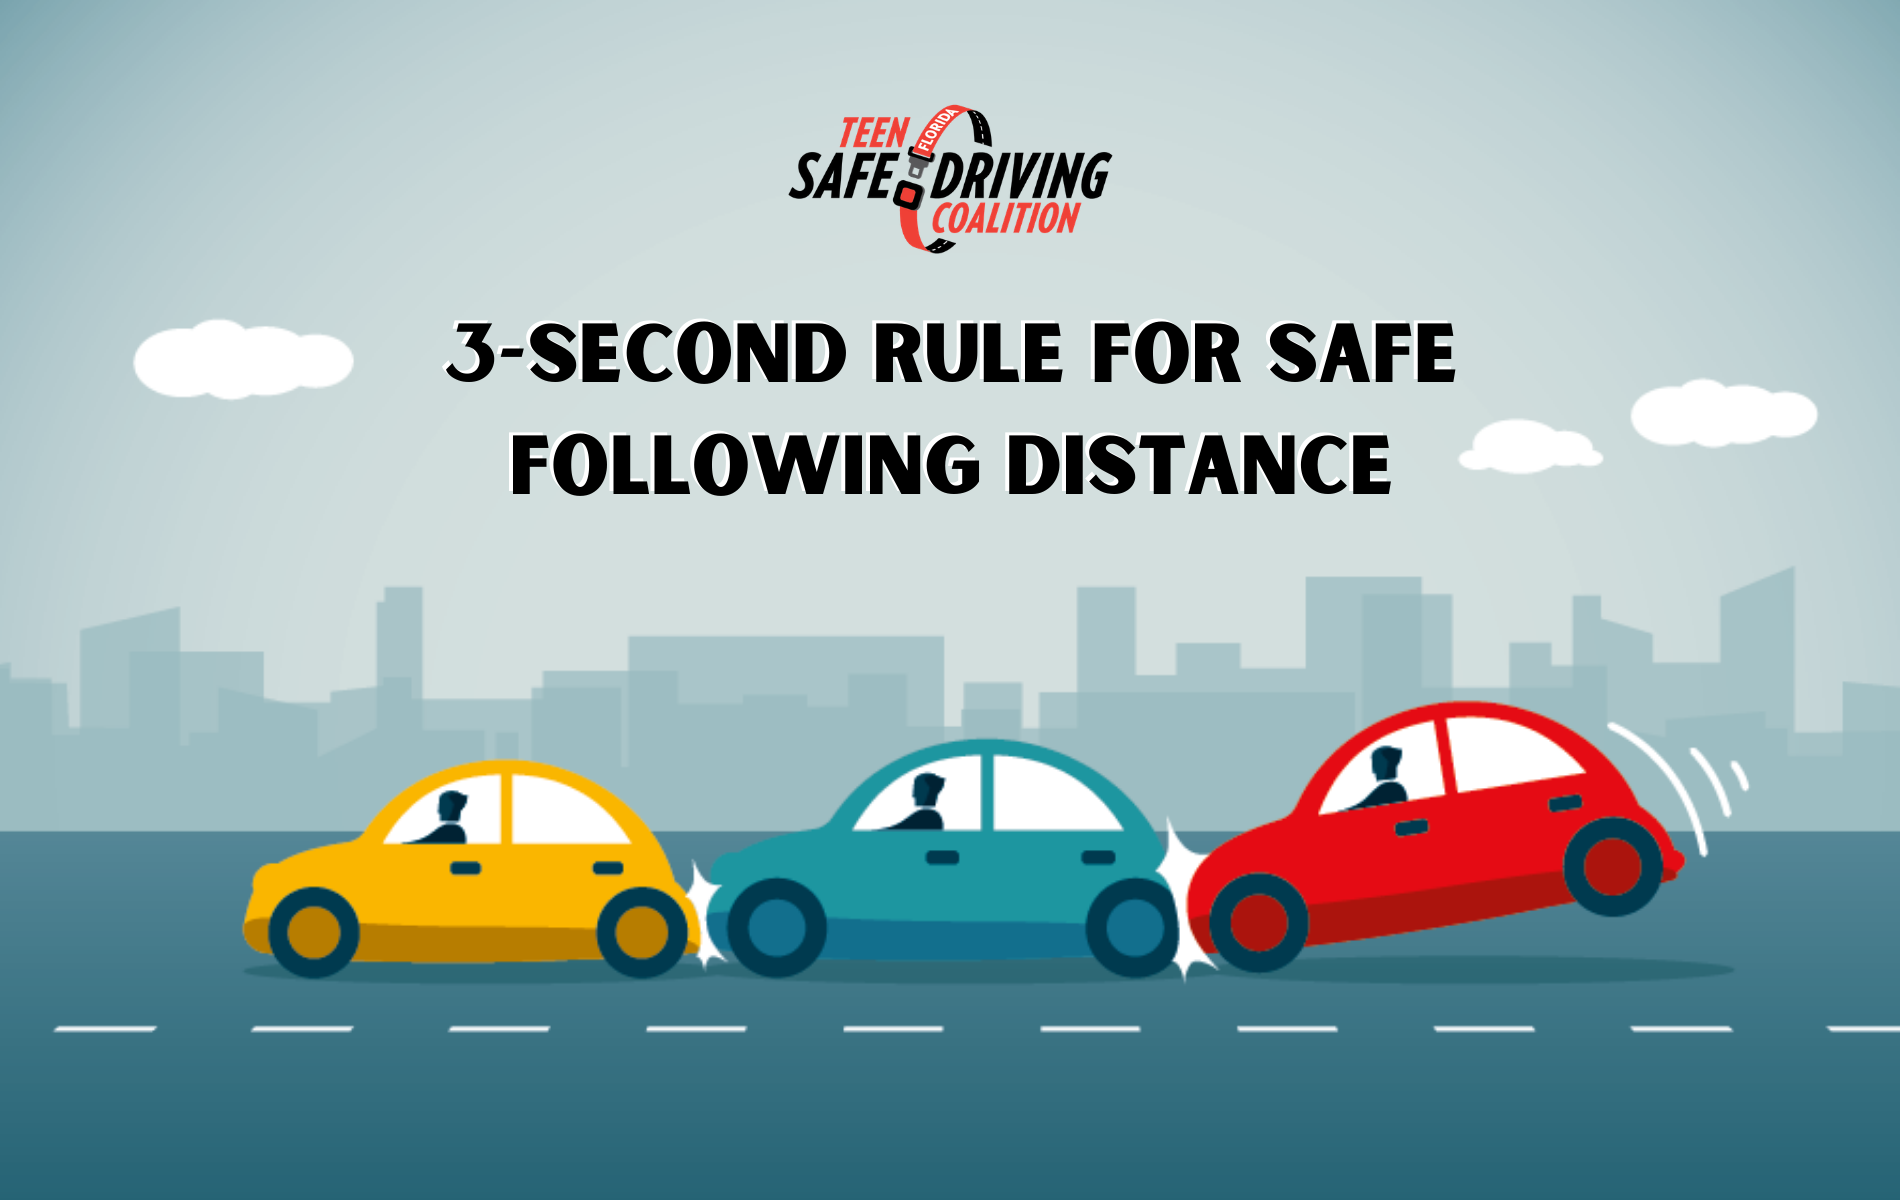 3-Second Rule for Safe Following Distance